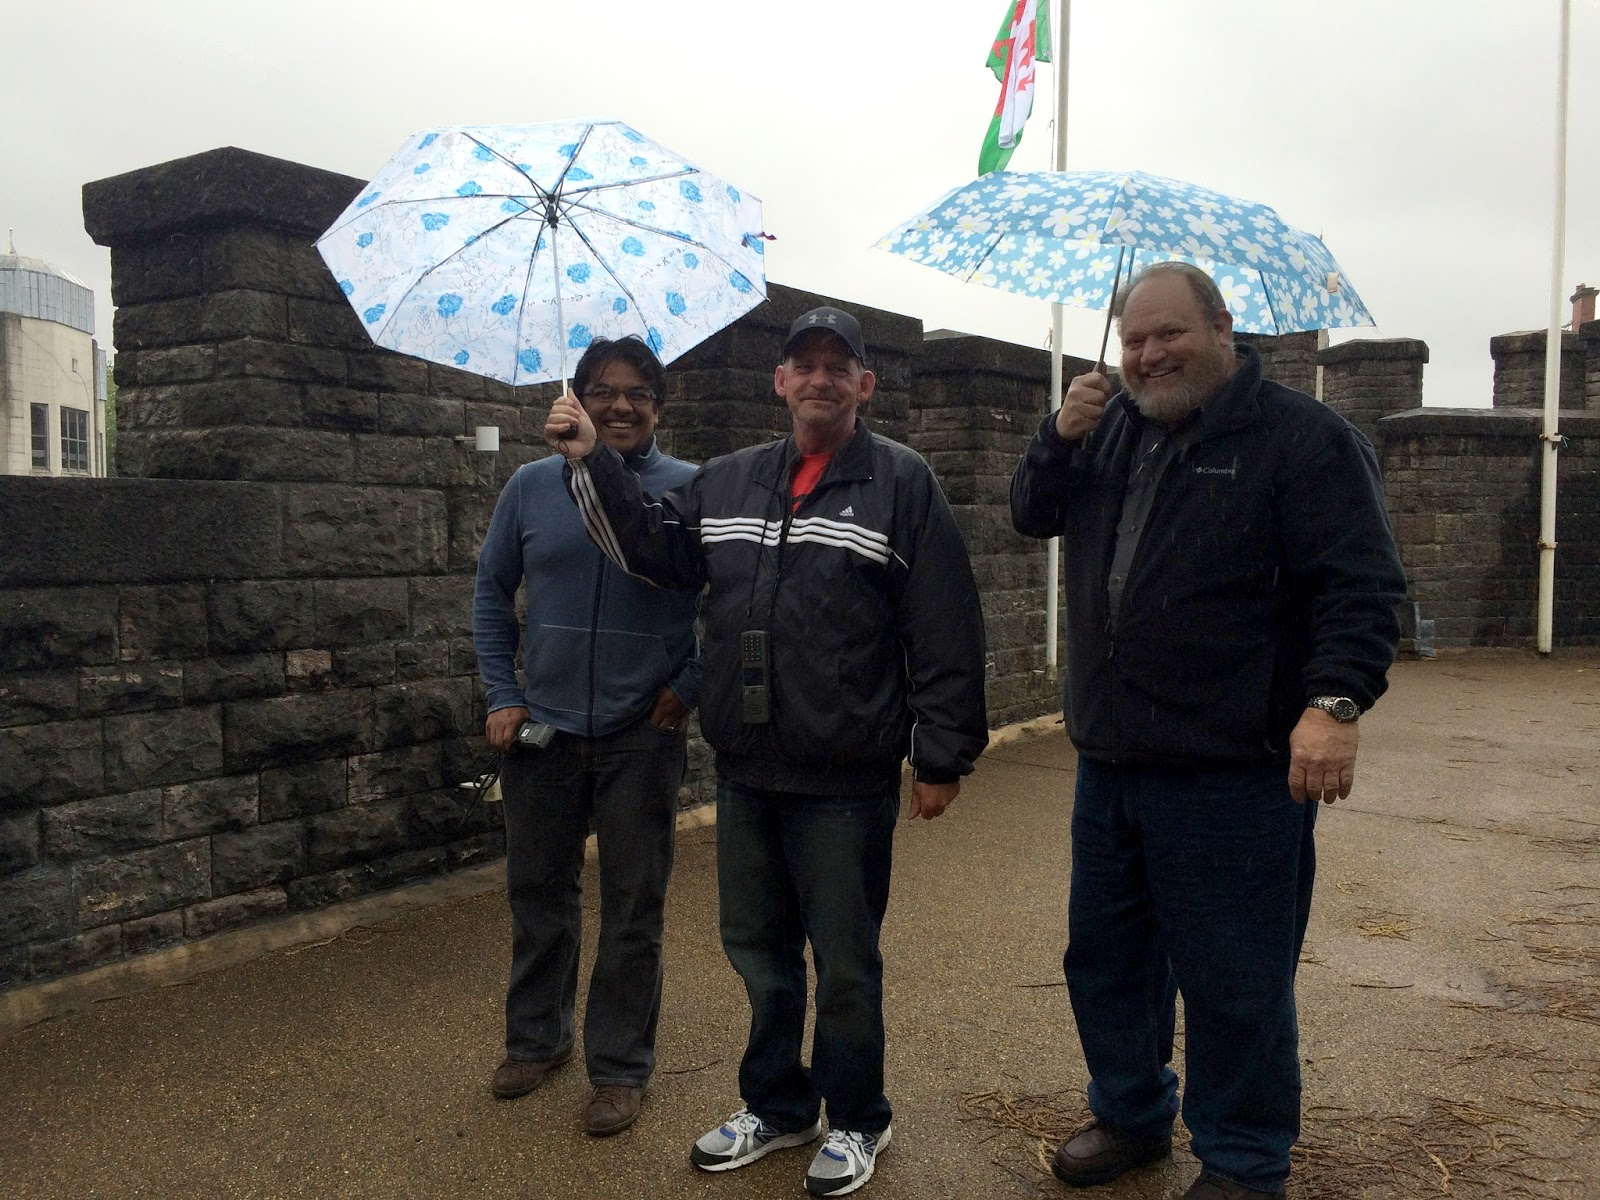 cozy birdhouse | a rainy trip to Cardiff castle